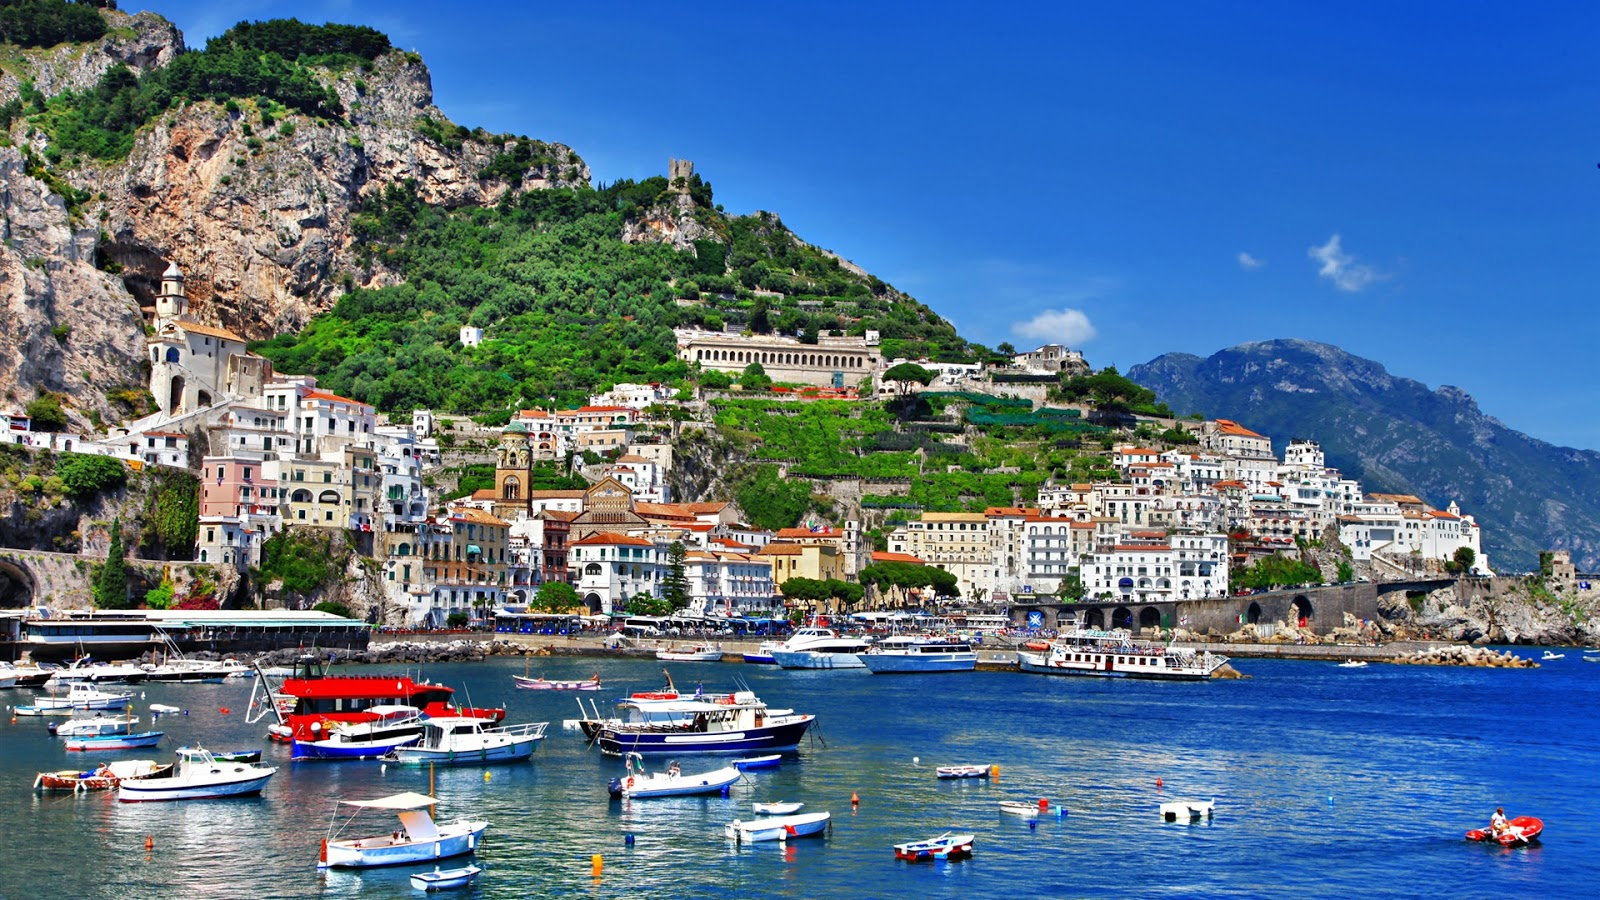 Italy Salerno Full Hd Desktop Wallpapers 1080p